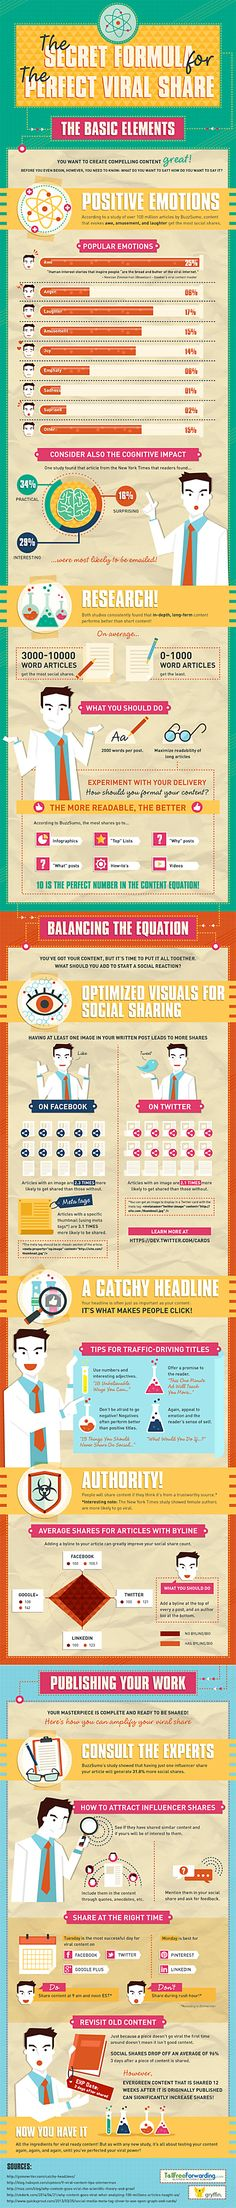 Is Your Social Media Content D.O.A.? Try This. (Infographic)